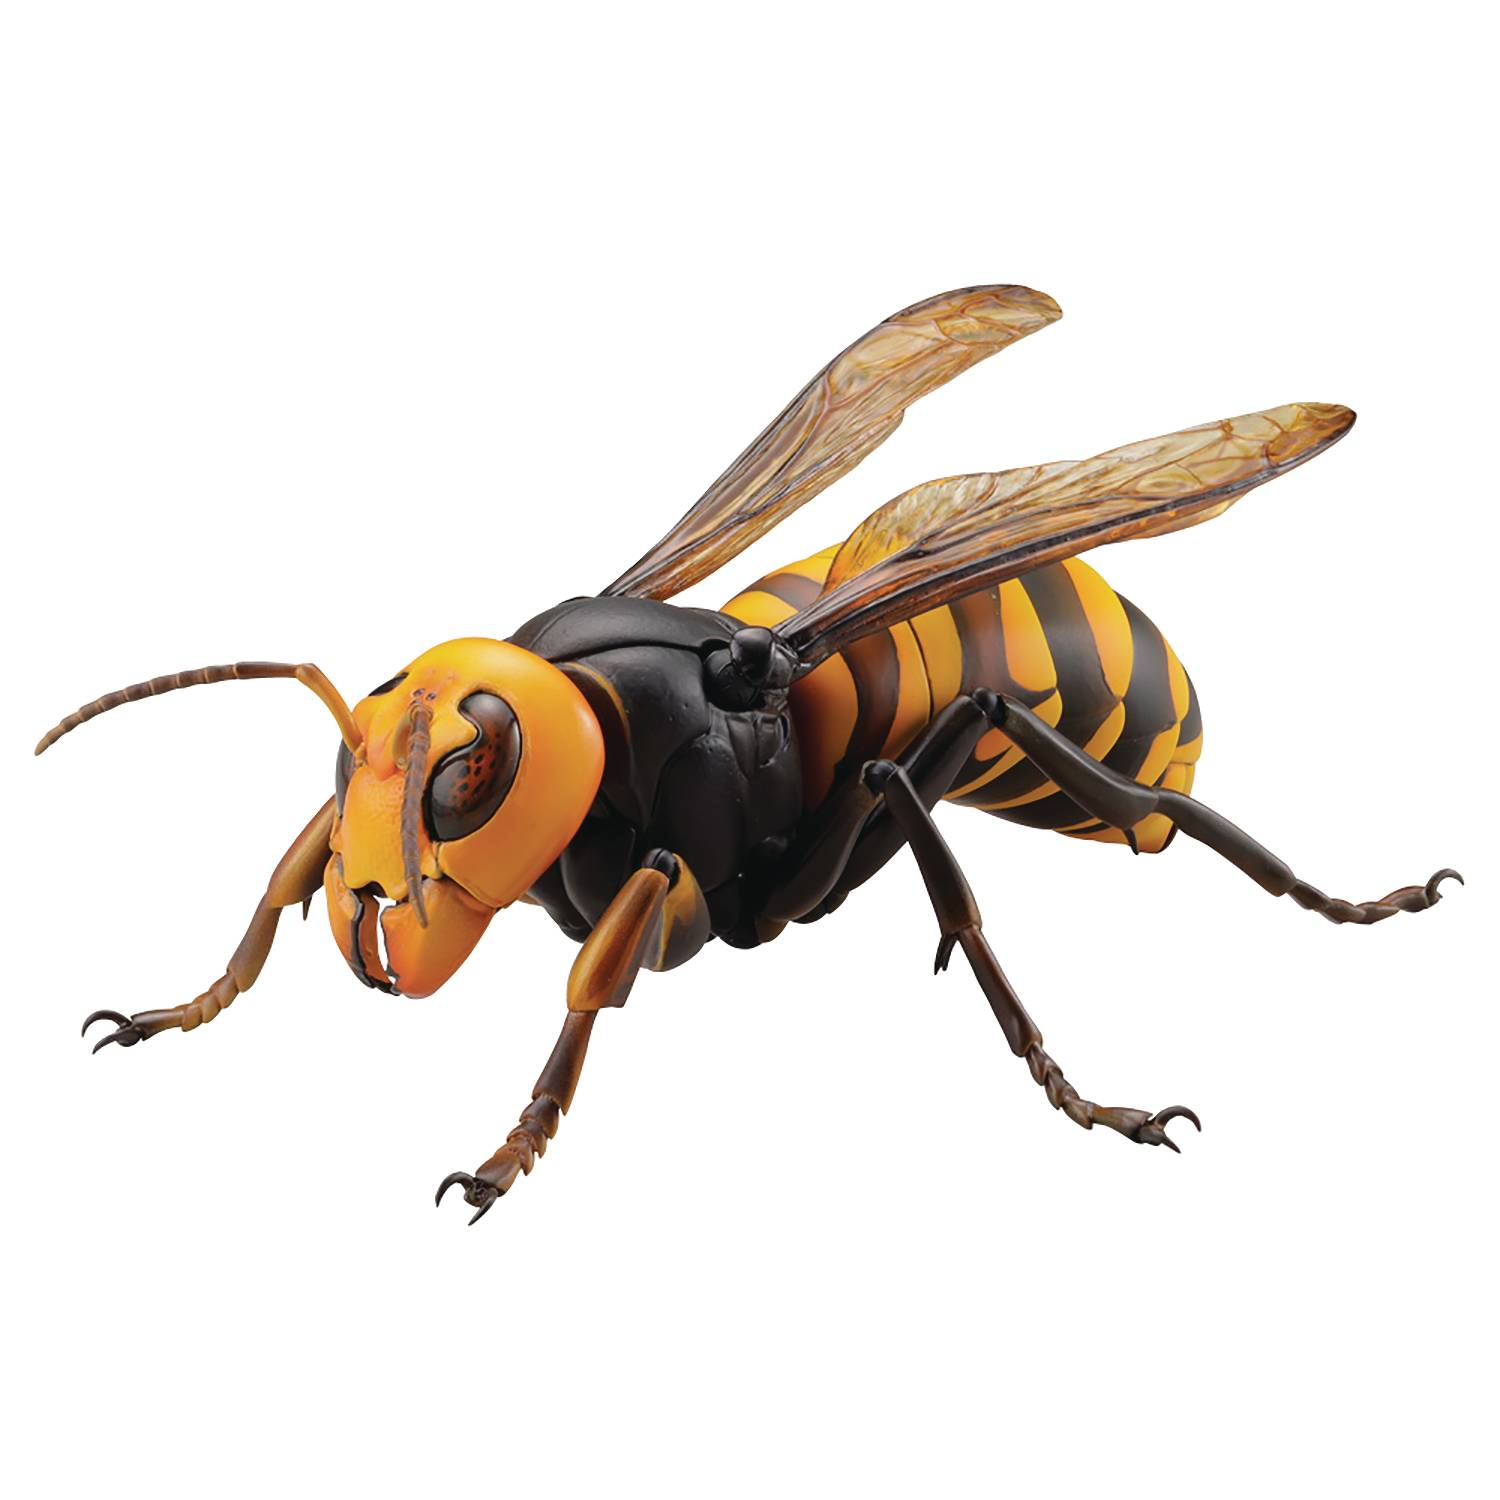 REVOGEO JAPANESE GIANT HORNET PVC FIG